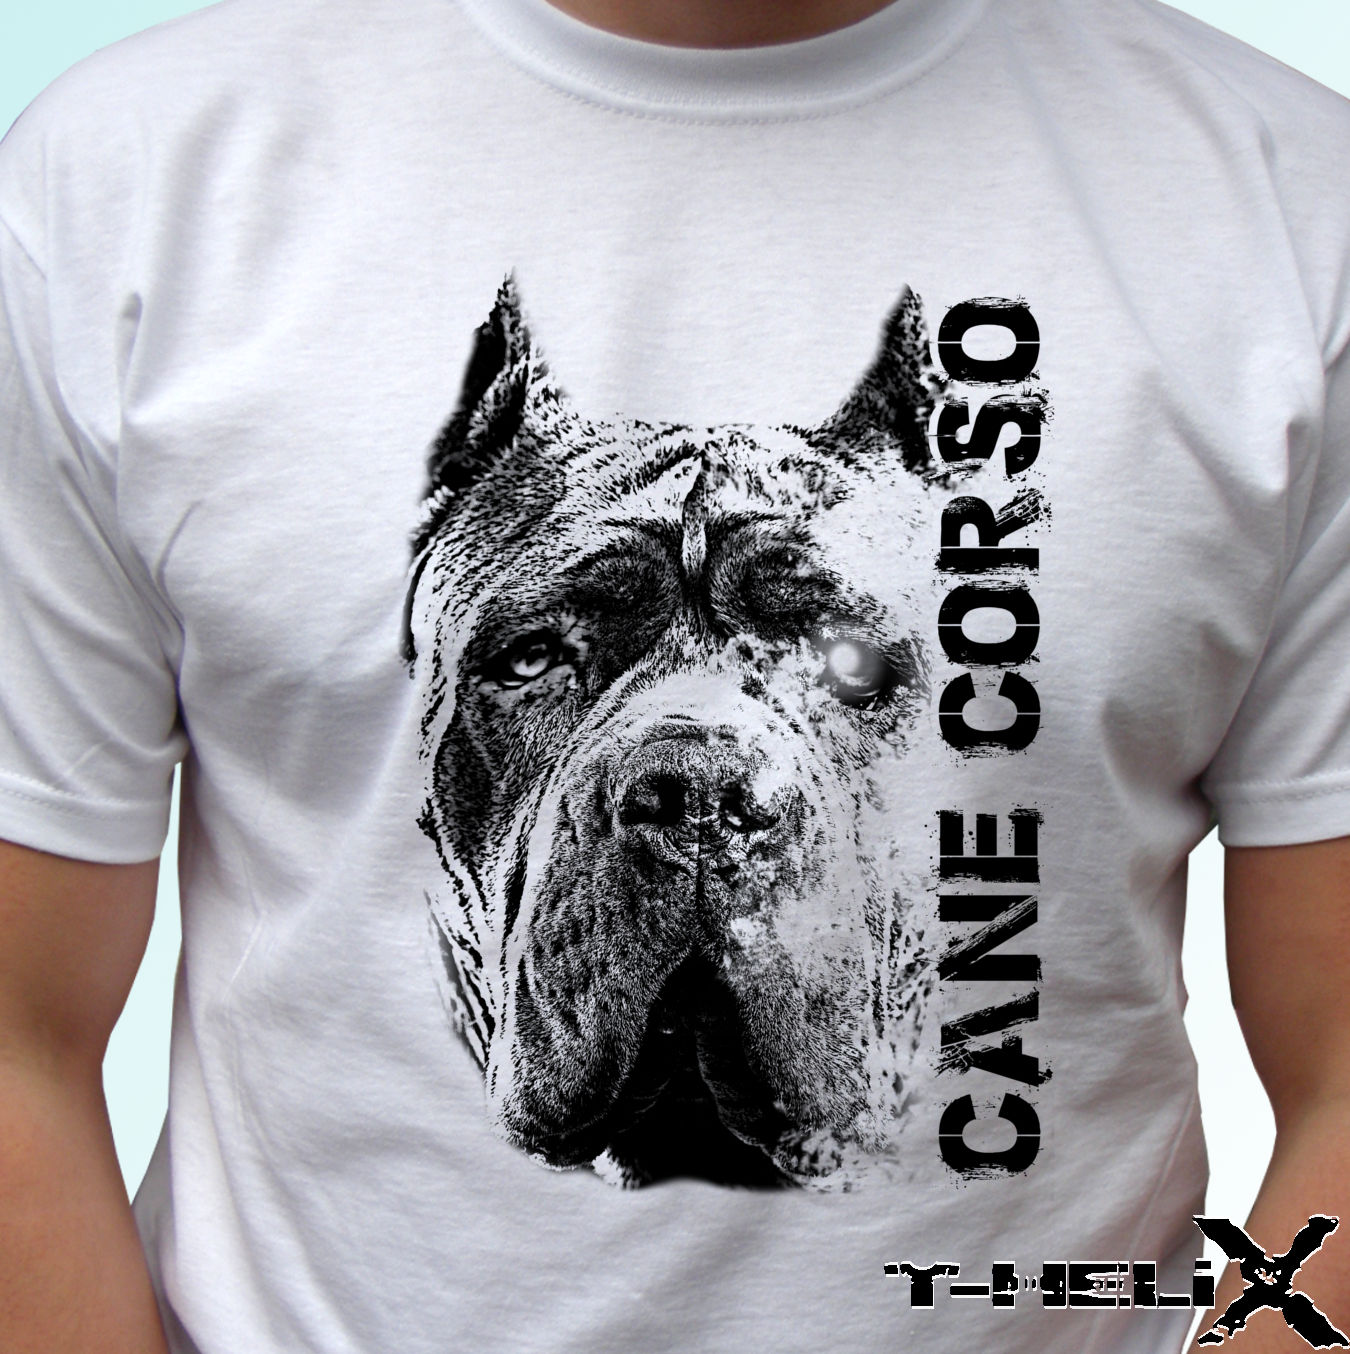 New Summer Fashion Men   T     Shirt   Simple Short-Sleeved Cotton   T  -  Shirt   Cane Corso Head - Dog Customize   T     Shirts